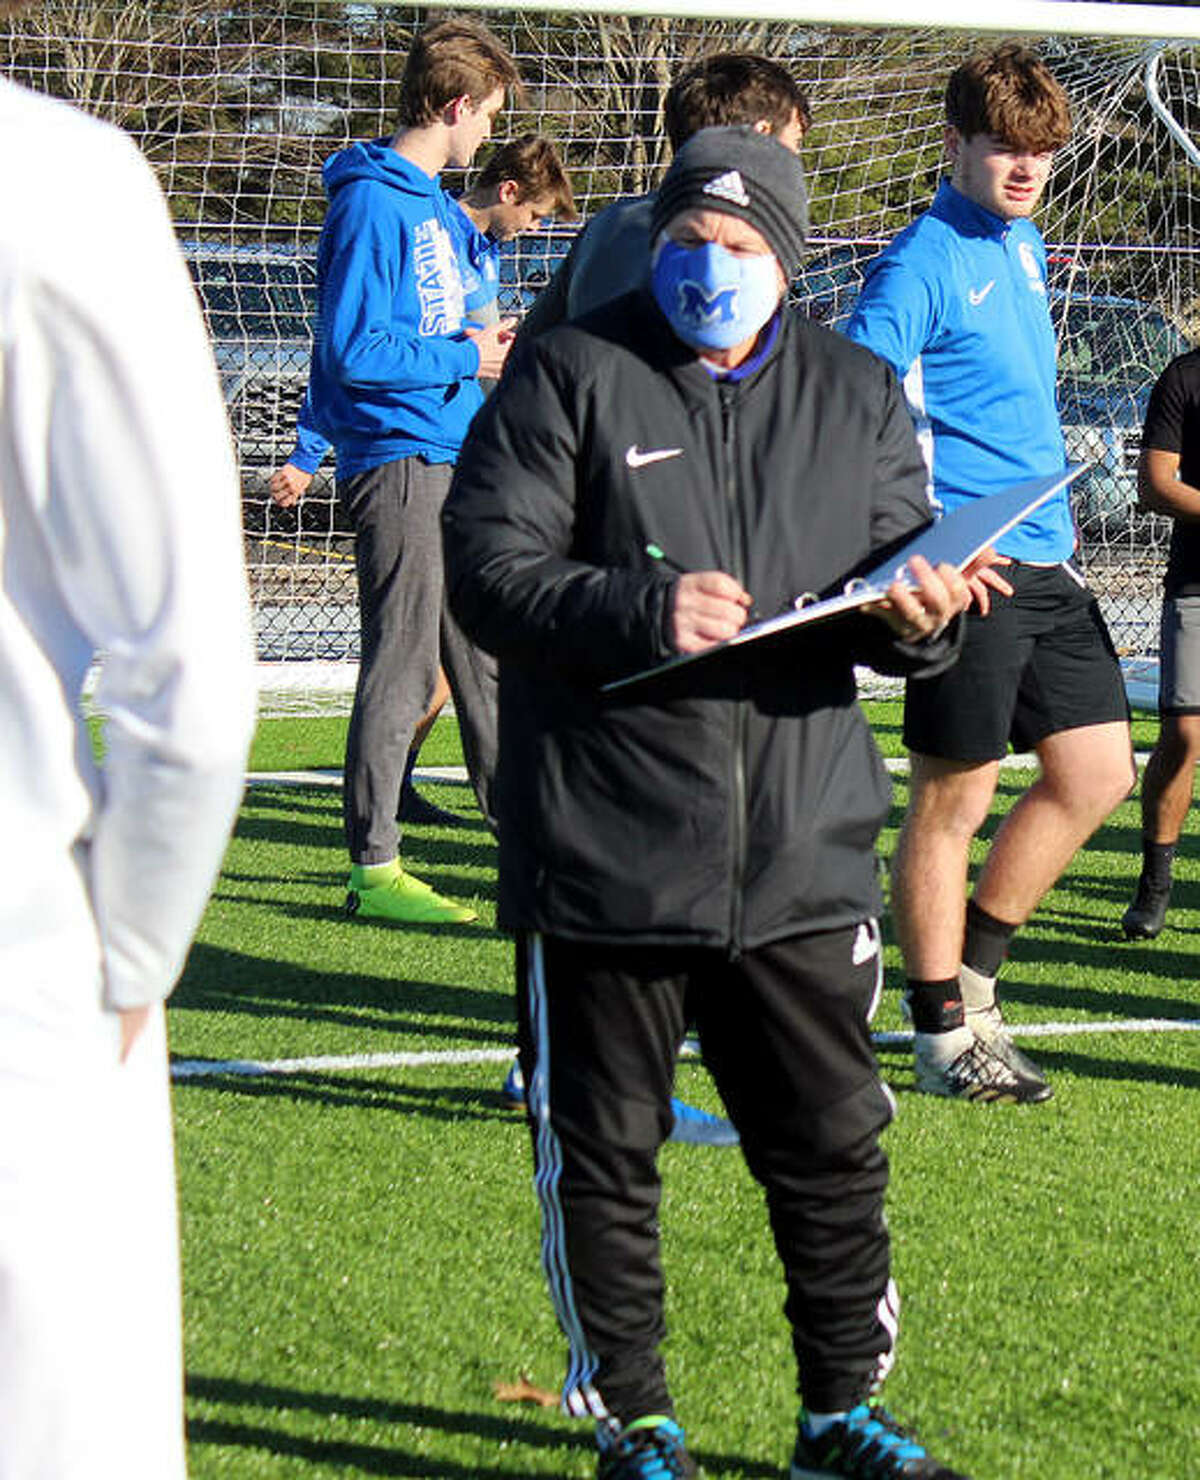 New Marquette catholic high boys soccer coach Jerry DiSalvo gathers his players for the first official preseason practice Monday at Gordon Moore Park.